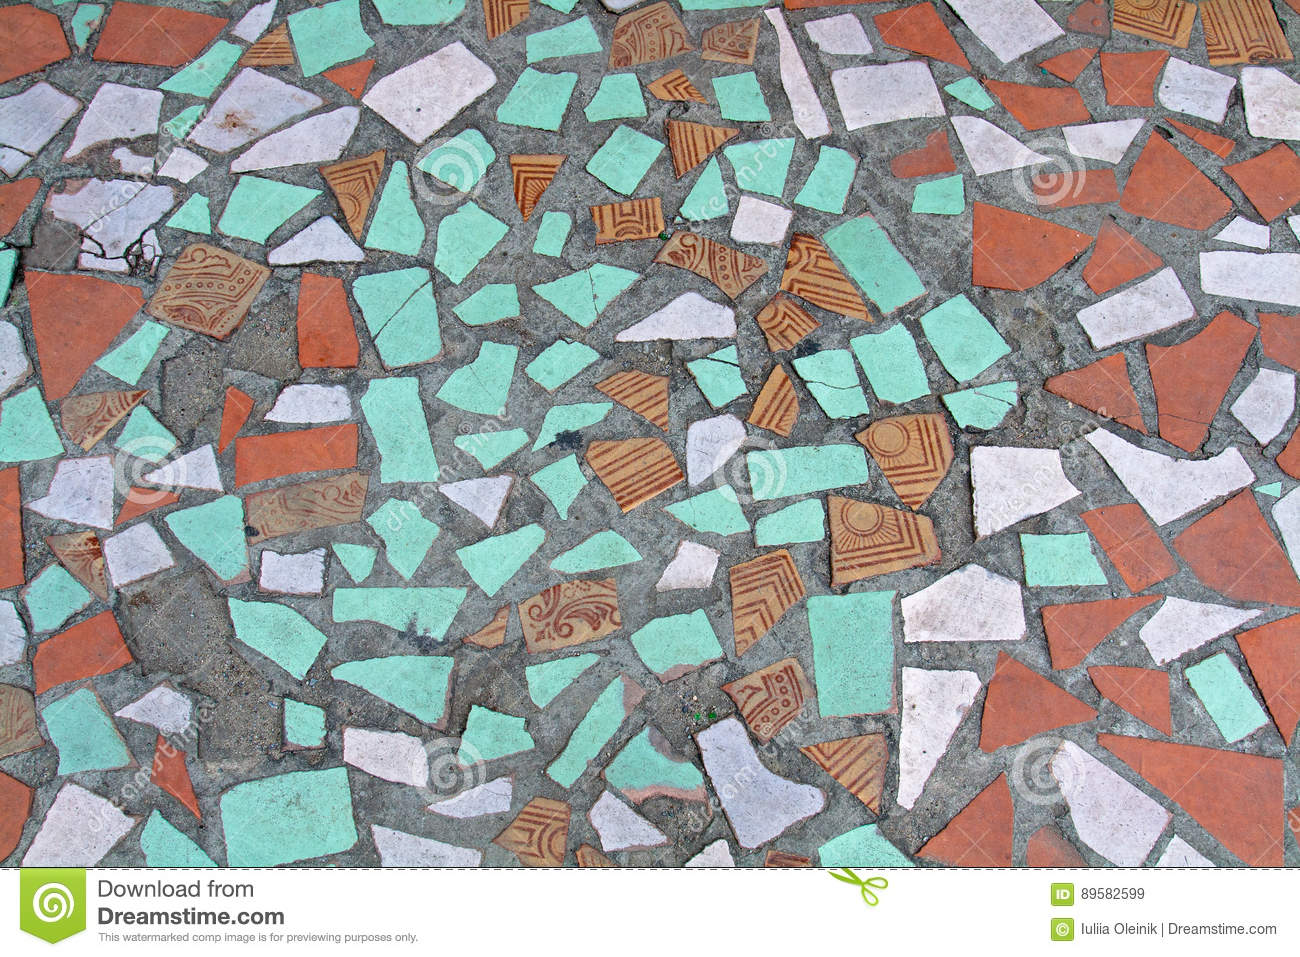 Old colorful mosaic on the floor of broken ceramic tiles stock old colorful mosaic on the floor of broken ceramic tiles dailygadgetfo Image collections